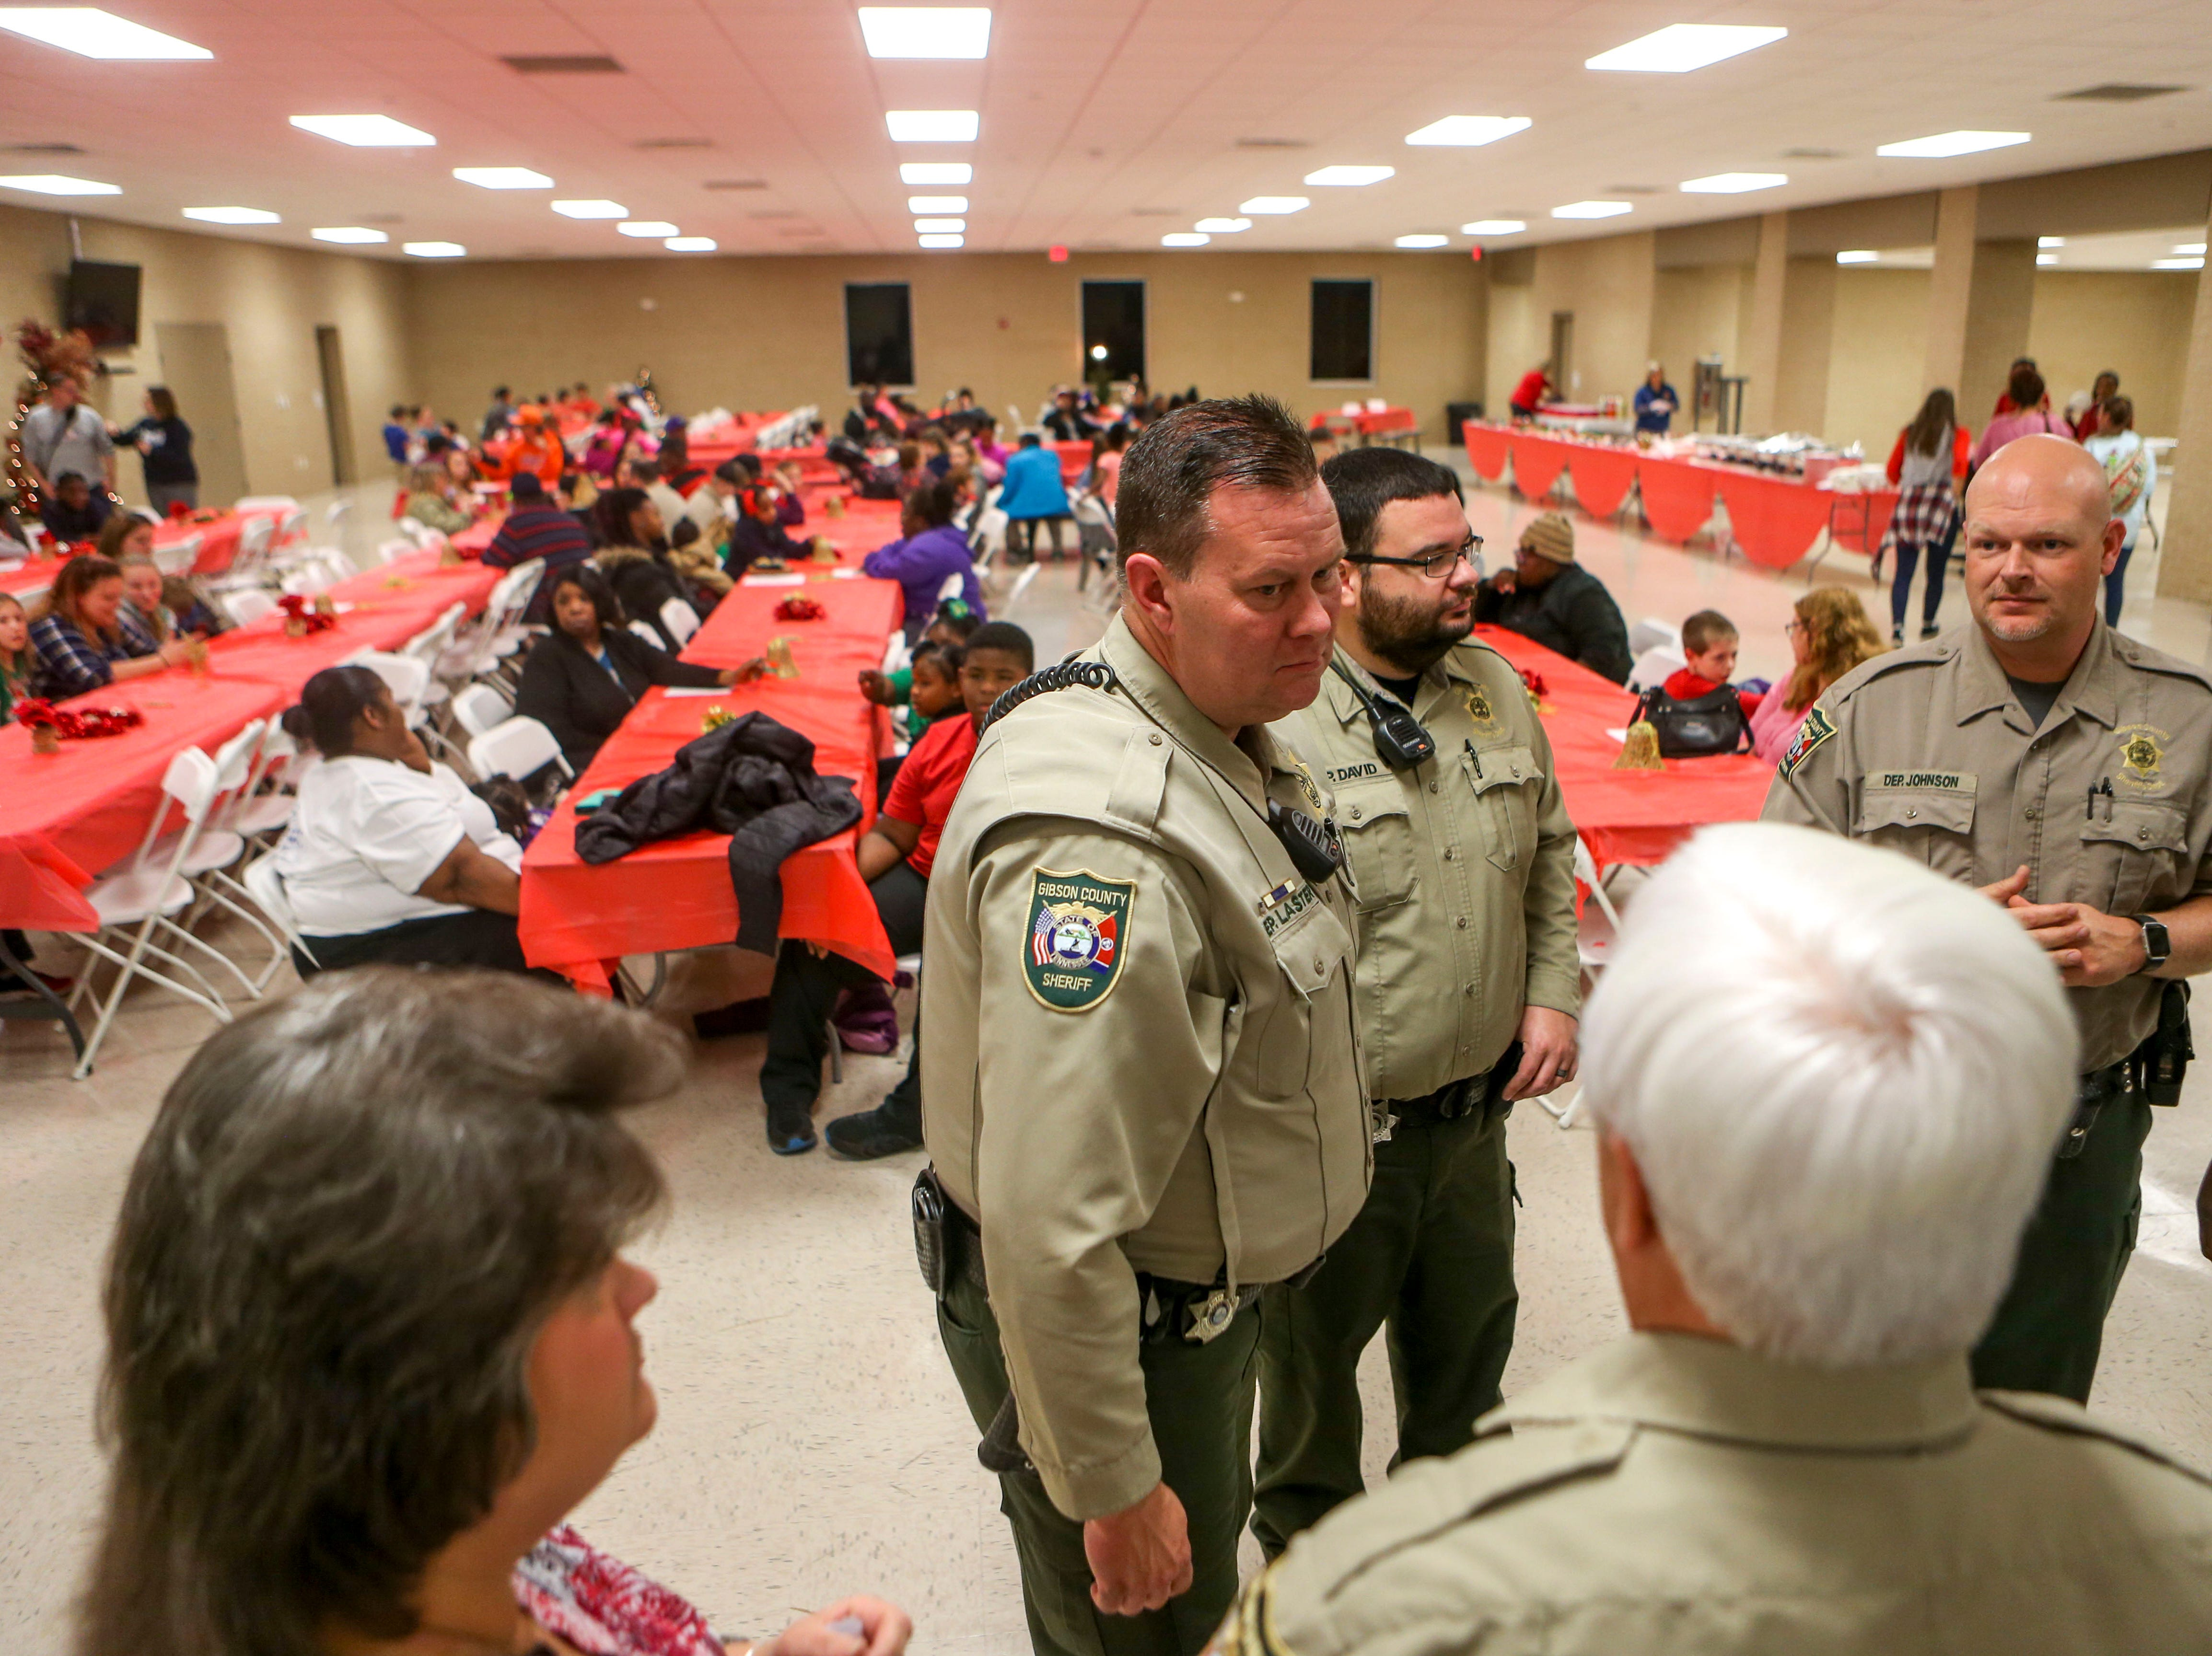 Law enforcement officers speak amongst themselves before starting the matching announcements during the matching time for Shop with a Cop at Hawkins-Whitby Fema Community Safe Room in Milan, Tenn., on Thursday, Dec. 13, 2018.